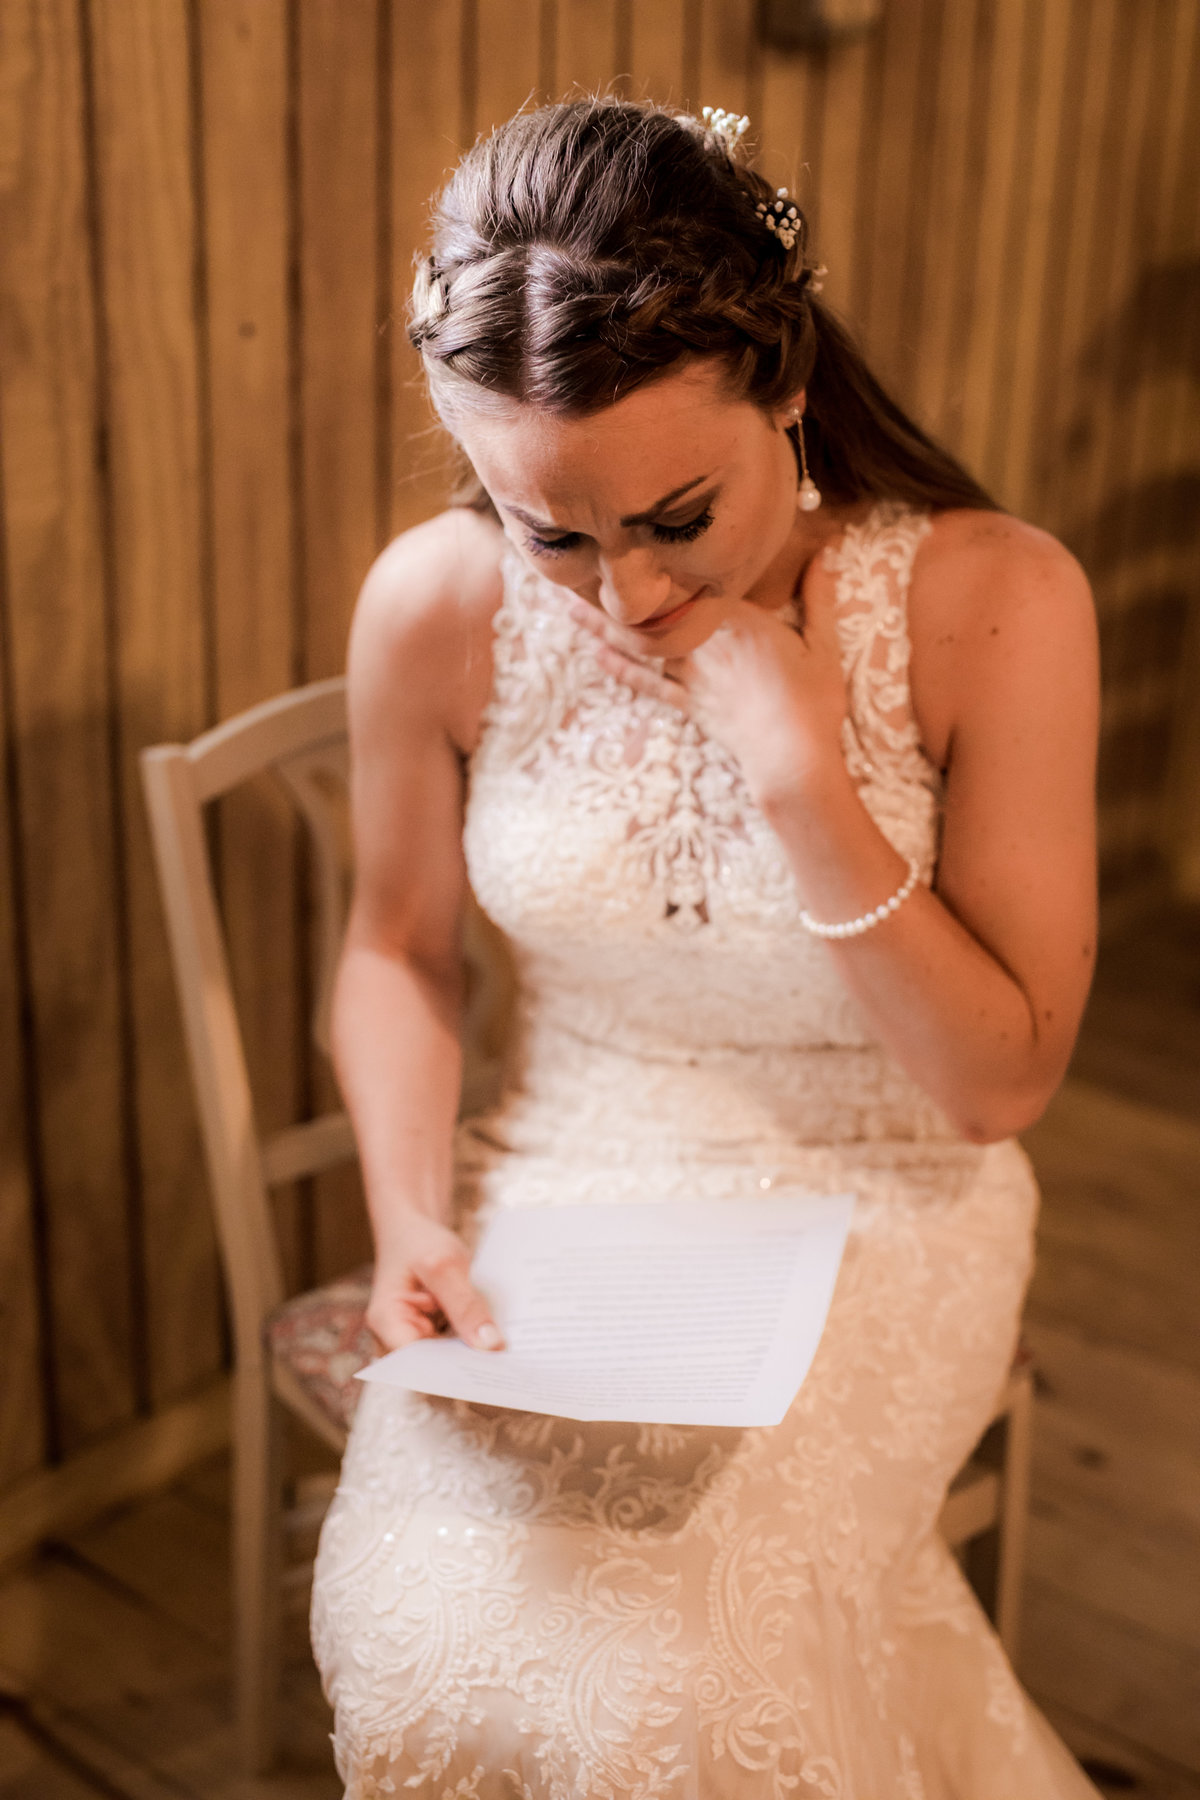 Nsshville Bride - Nashville Brides - The Hayloft Weddings - Tennessee Brides - Kentucky Brides - Southern Brides - Cowboys Wife - Cowboys Bride - Ranch Weddings - Cowboys and Belles149